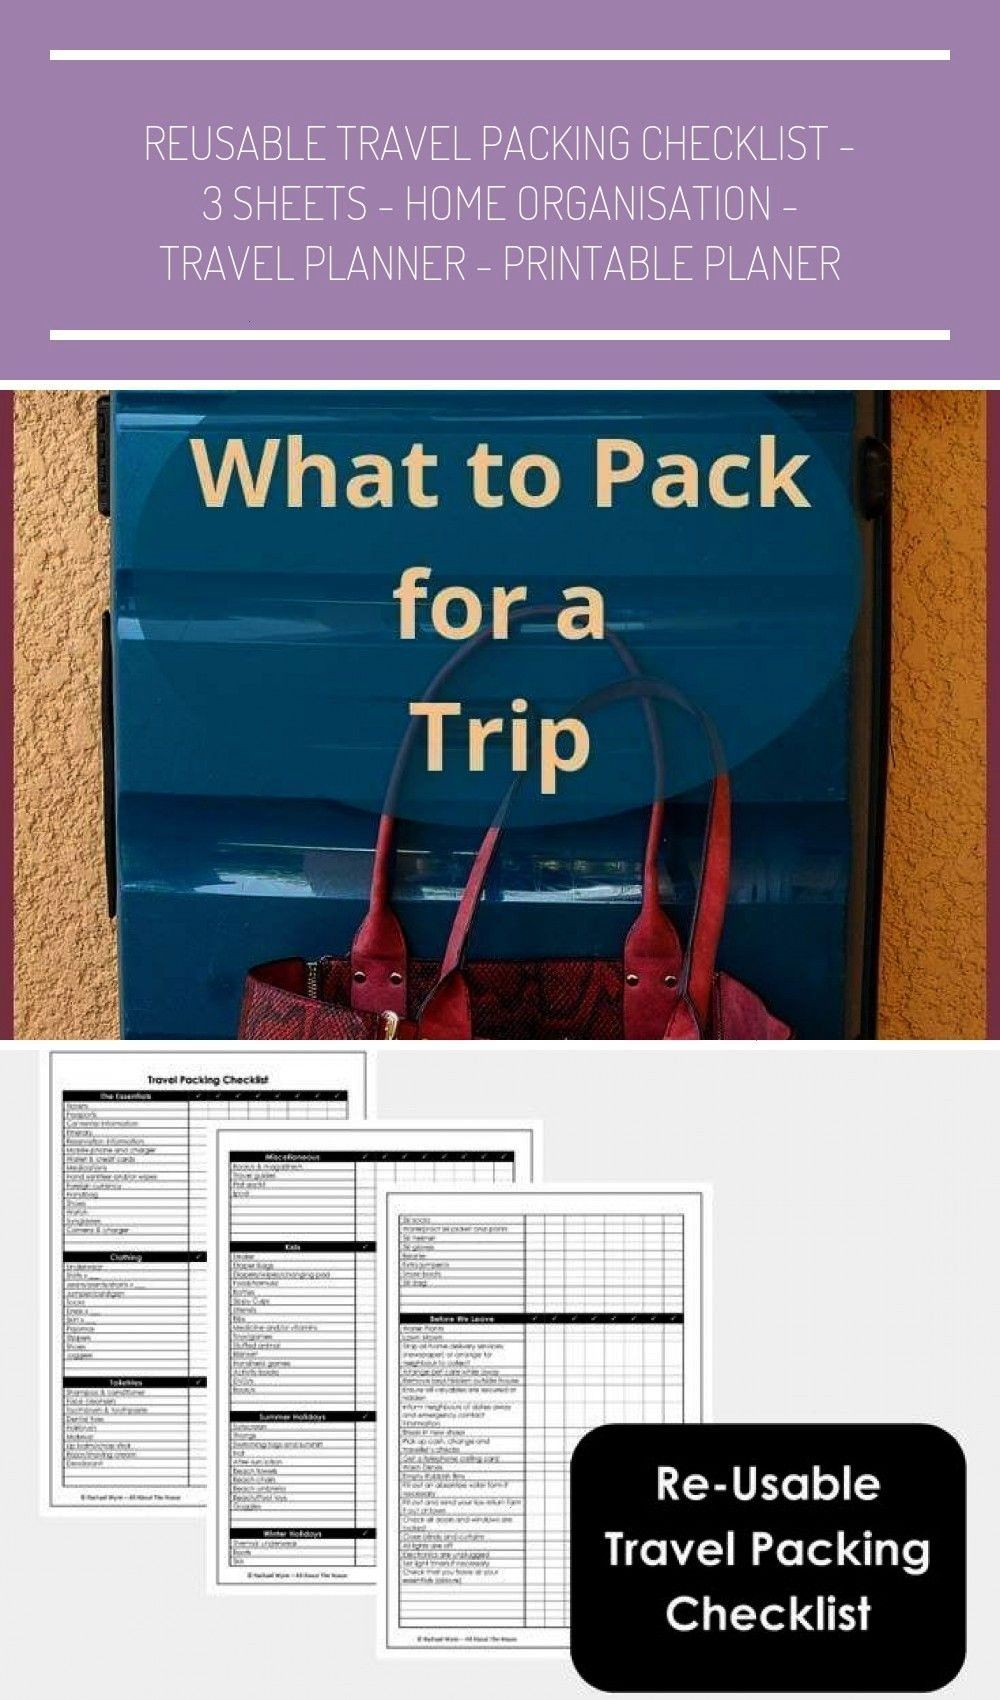 #ultimatepackinglist #ultimate #packing #travel #what #pack #list #trip #pdf #the #for #to #pd #ul #aWhat to Pack for a Trip? The Ultimate Packing List PDF,   - Travel Packing - What to Pack for a Trip? The Ultimate Packing List PDF,   - Travel Packing - What to Pack for a Trip? The Ultimate Packing List PDF,   - Travel Packing -What to Pack for a Trip? The Ultimate Packing List PDF,   - Travel Packing - What to Pack for a Trip? The Ultimate Packing List PDF,   - Travel Packing - What to ... #ul #ultimatepackinglist